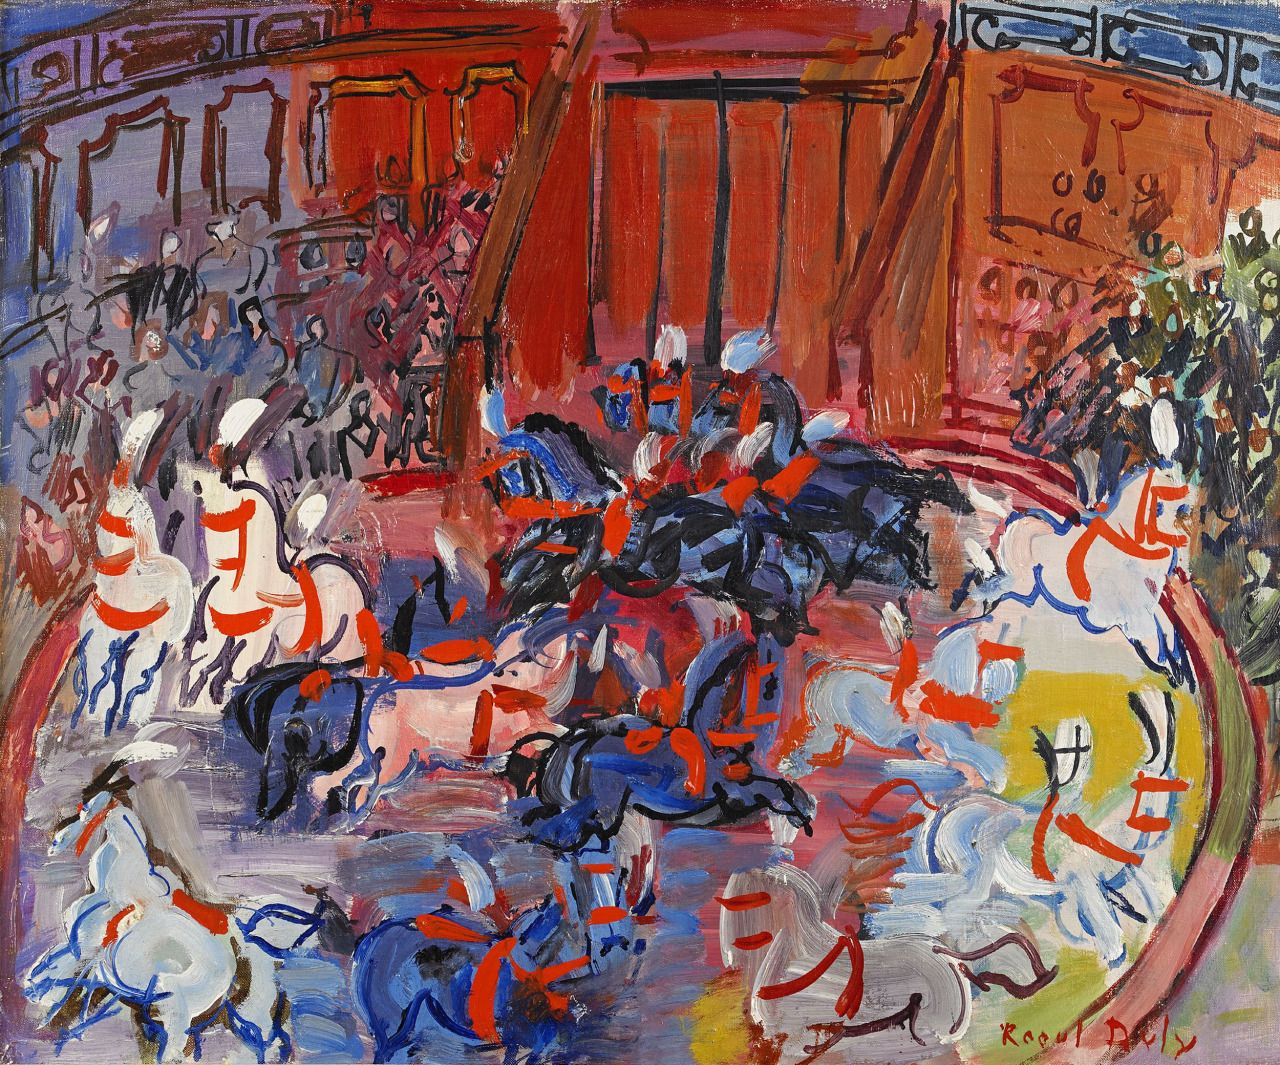 le-cirque-chevaux-en-piste-the-circus-horses-in-the-ring-1931-by-raoul-dufy